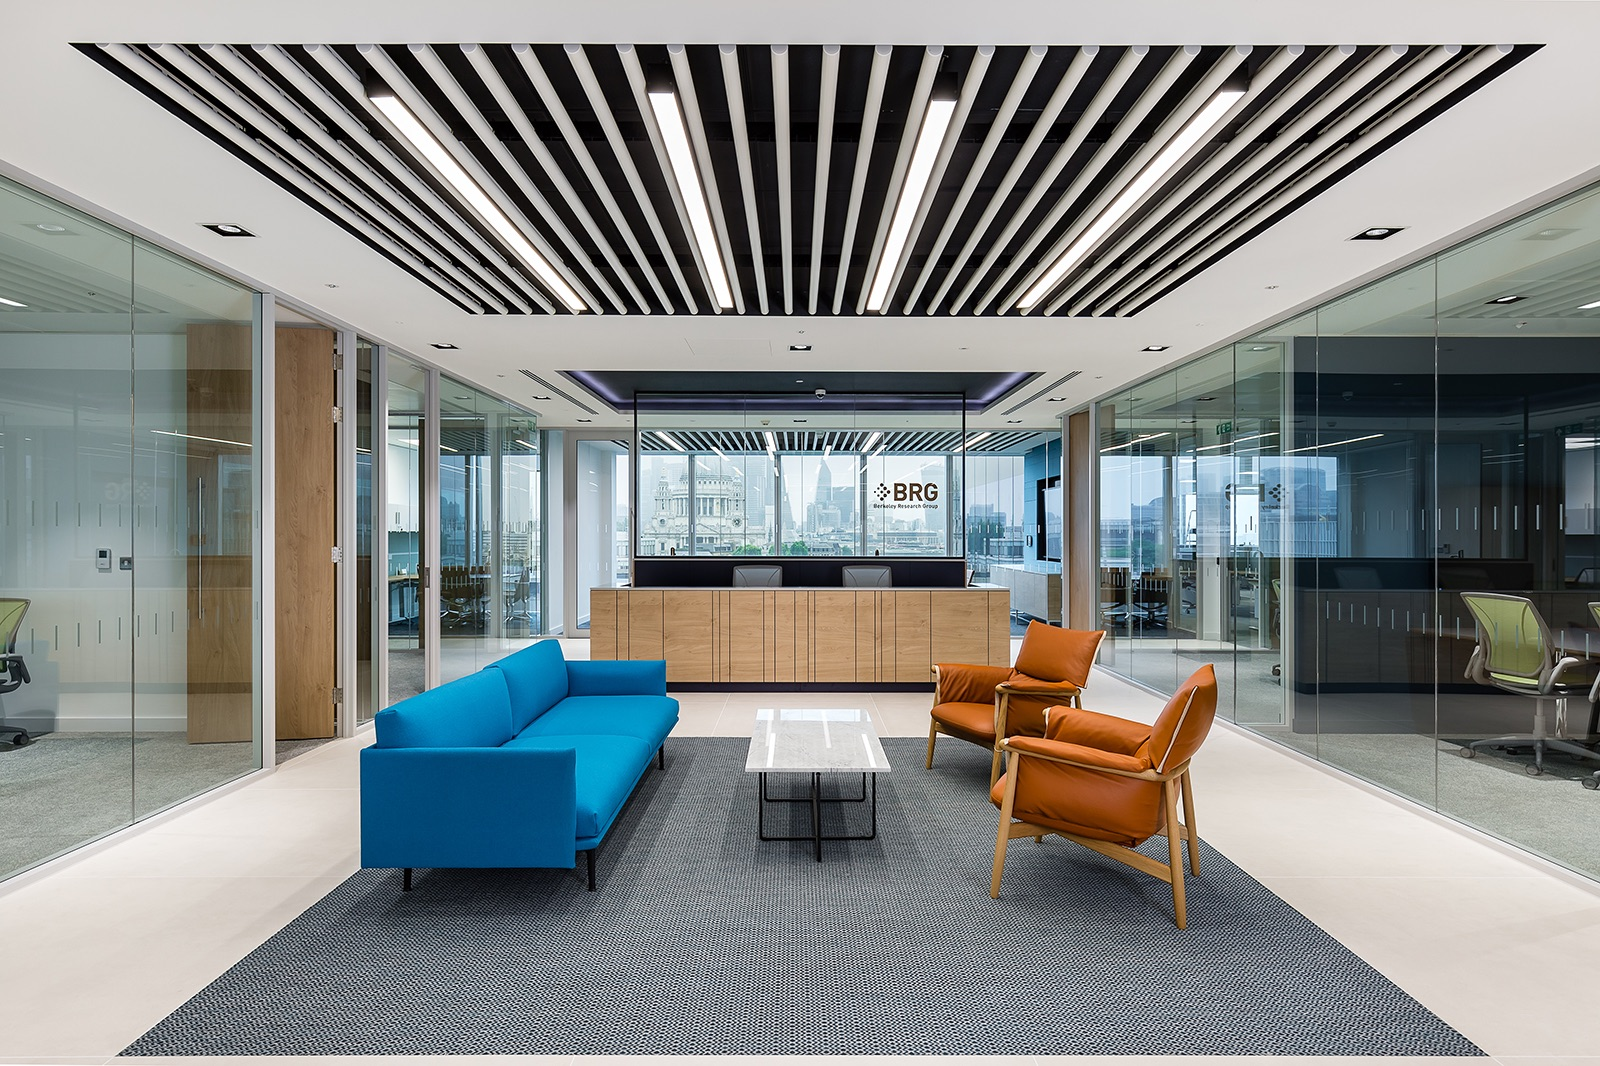 A Tour of Berkeley Research Group's New London Office